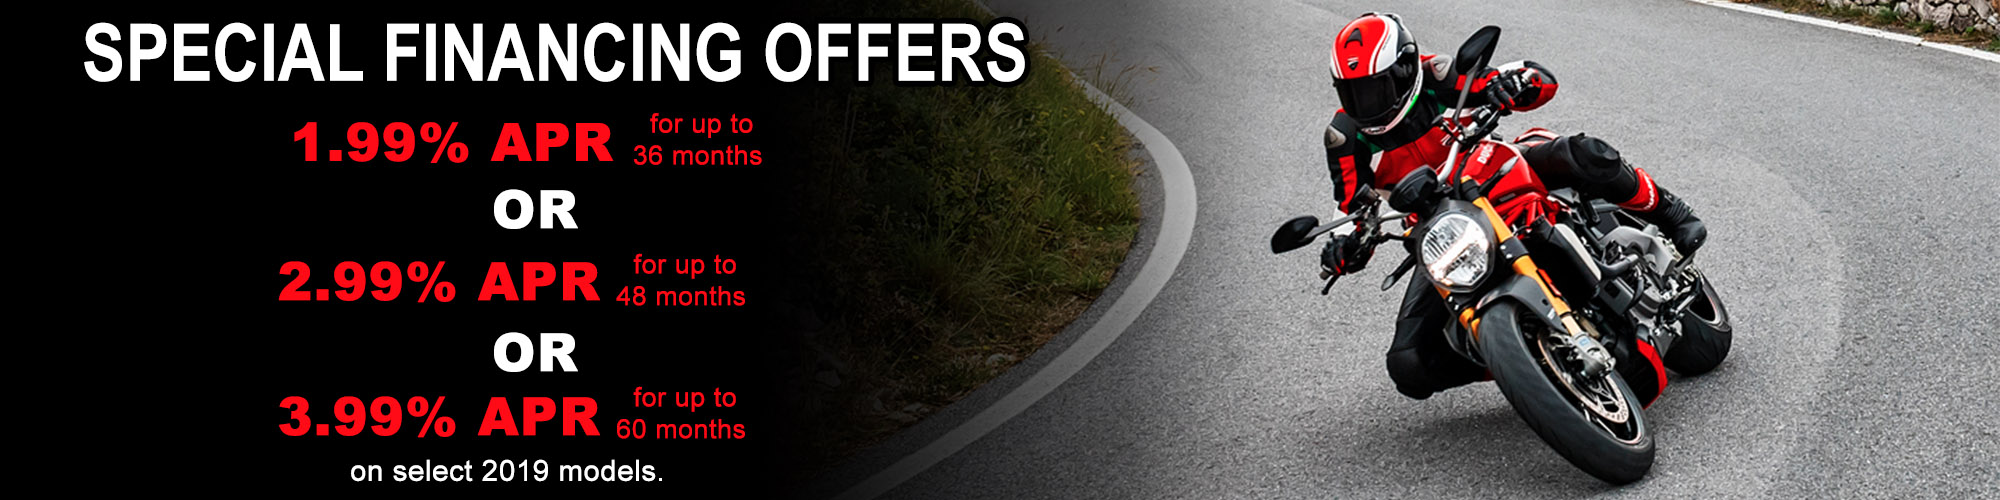 Special Financing Offers at Frontline Eurosports